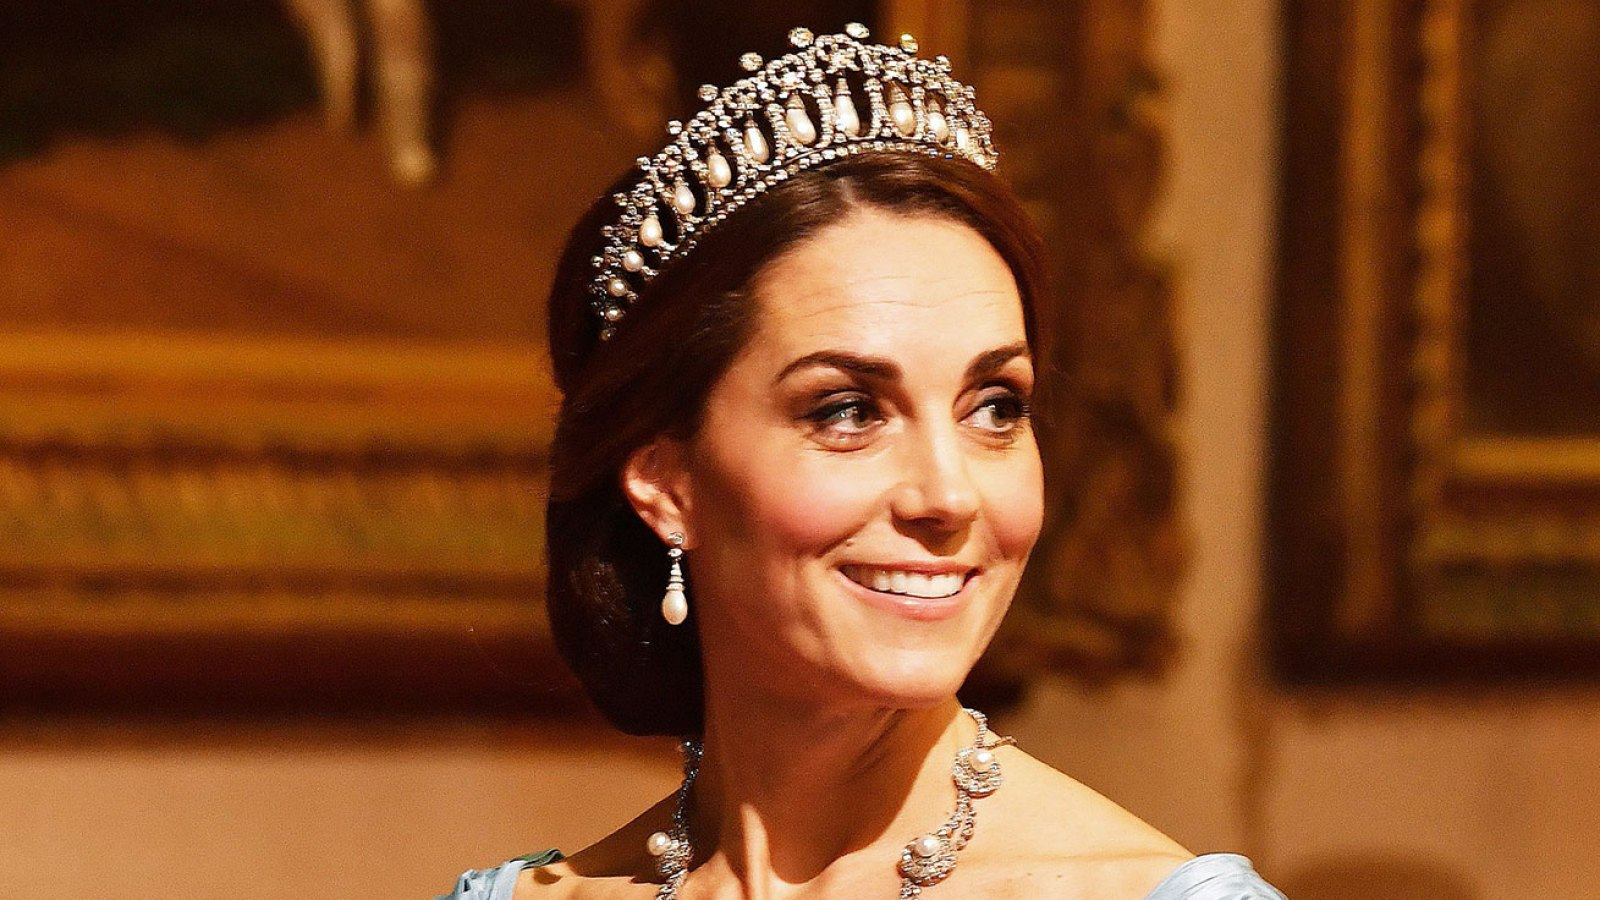 cf2b9e974a14b All About the Diamond Consort Crown Kate Middleton Will Wear When She  Becomes Queen